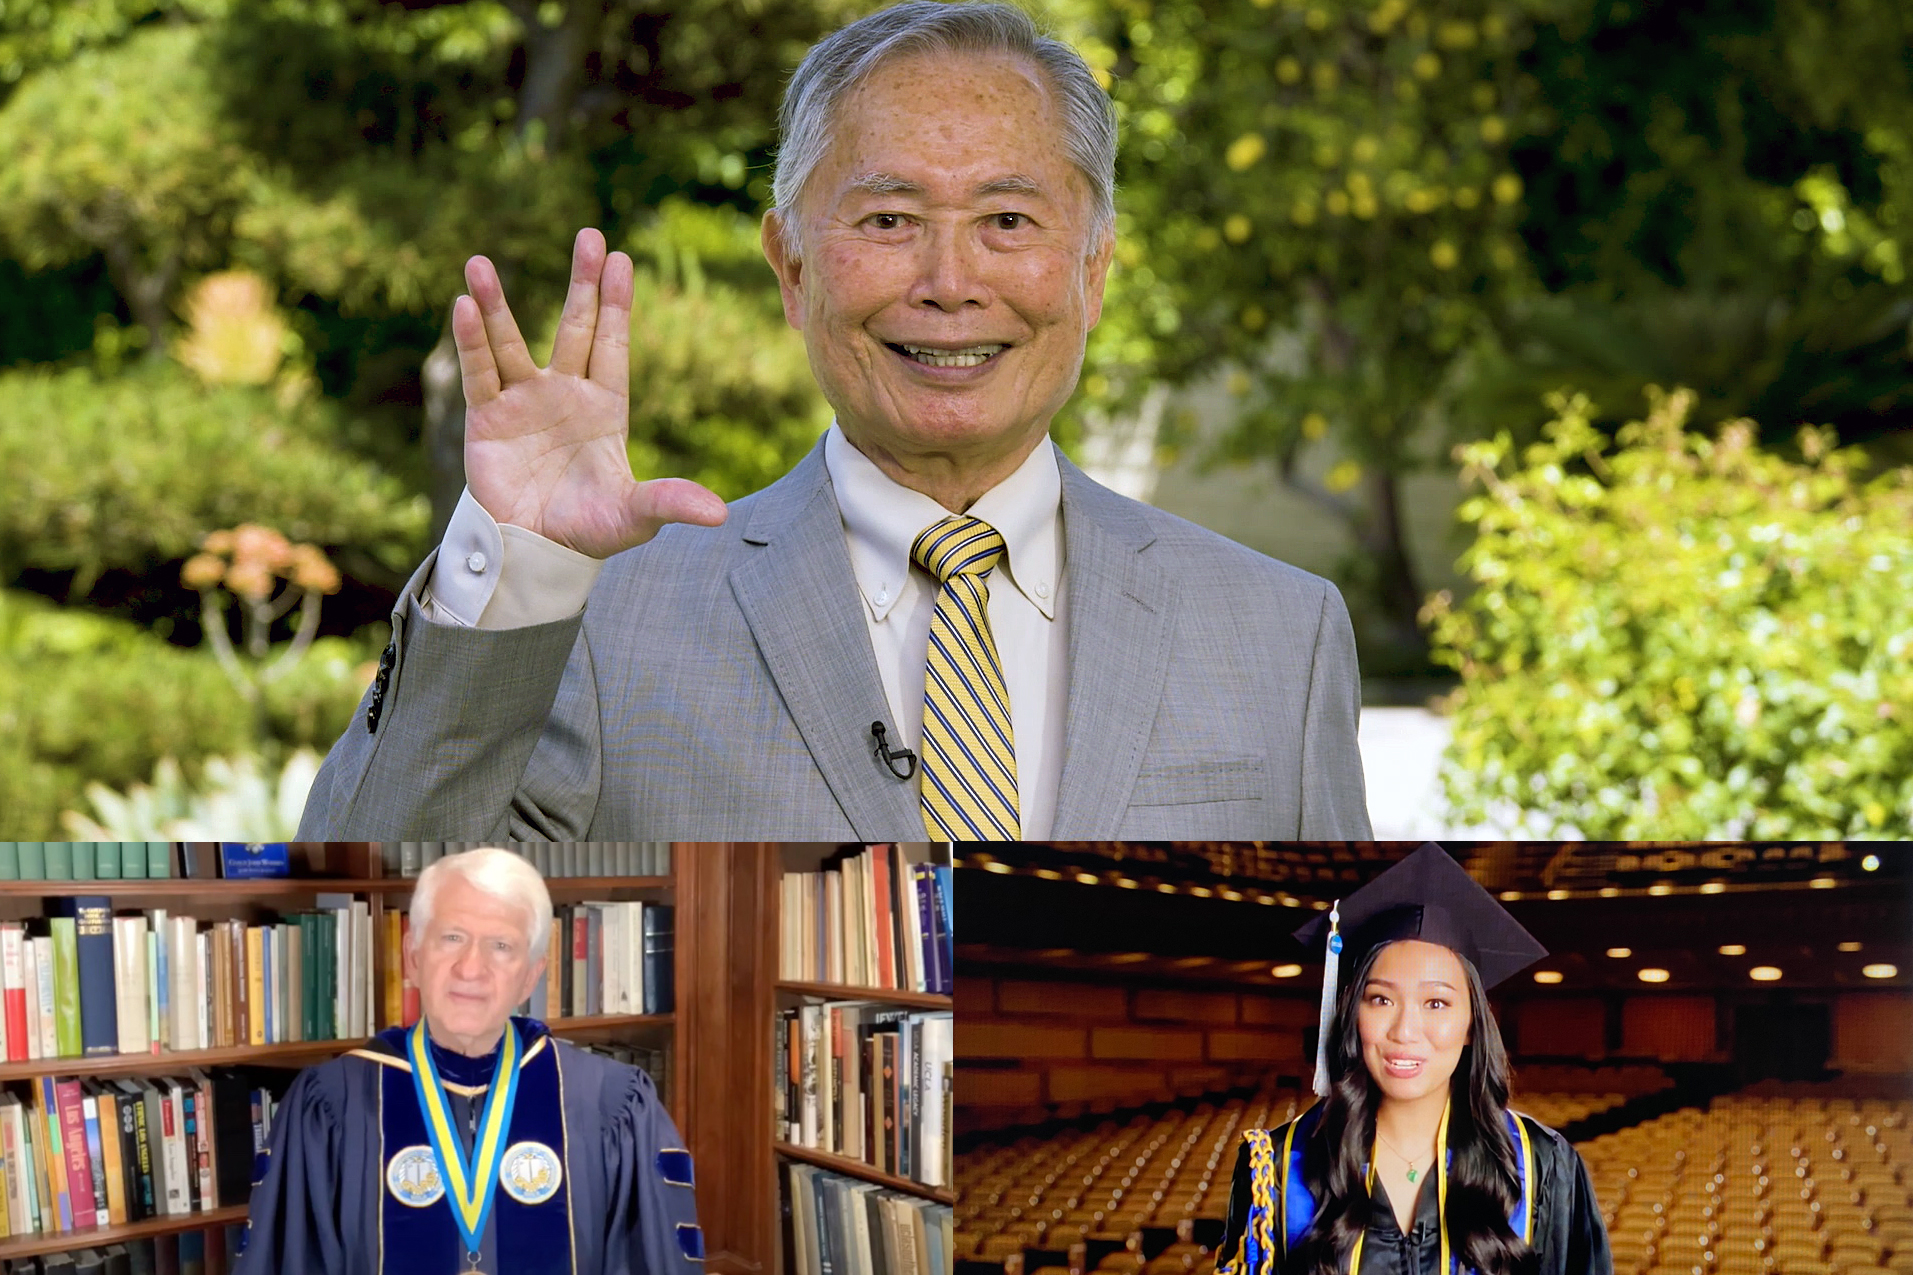 A photo montage of 2020 Virtual Celebration speakers. Top: George Takei, featured speaker during the UCLA College's 2020 virtual celebration. Lower left: UCLA Chancellor Gene Block. Lower right: student speaker Kristie-Valerie Phung Hoang.